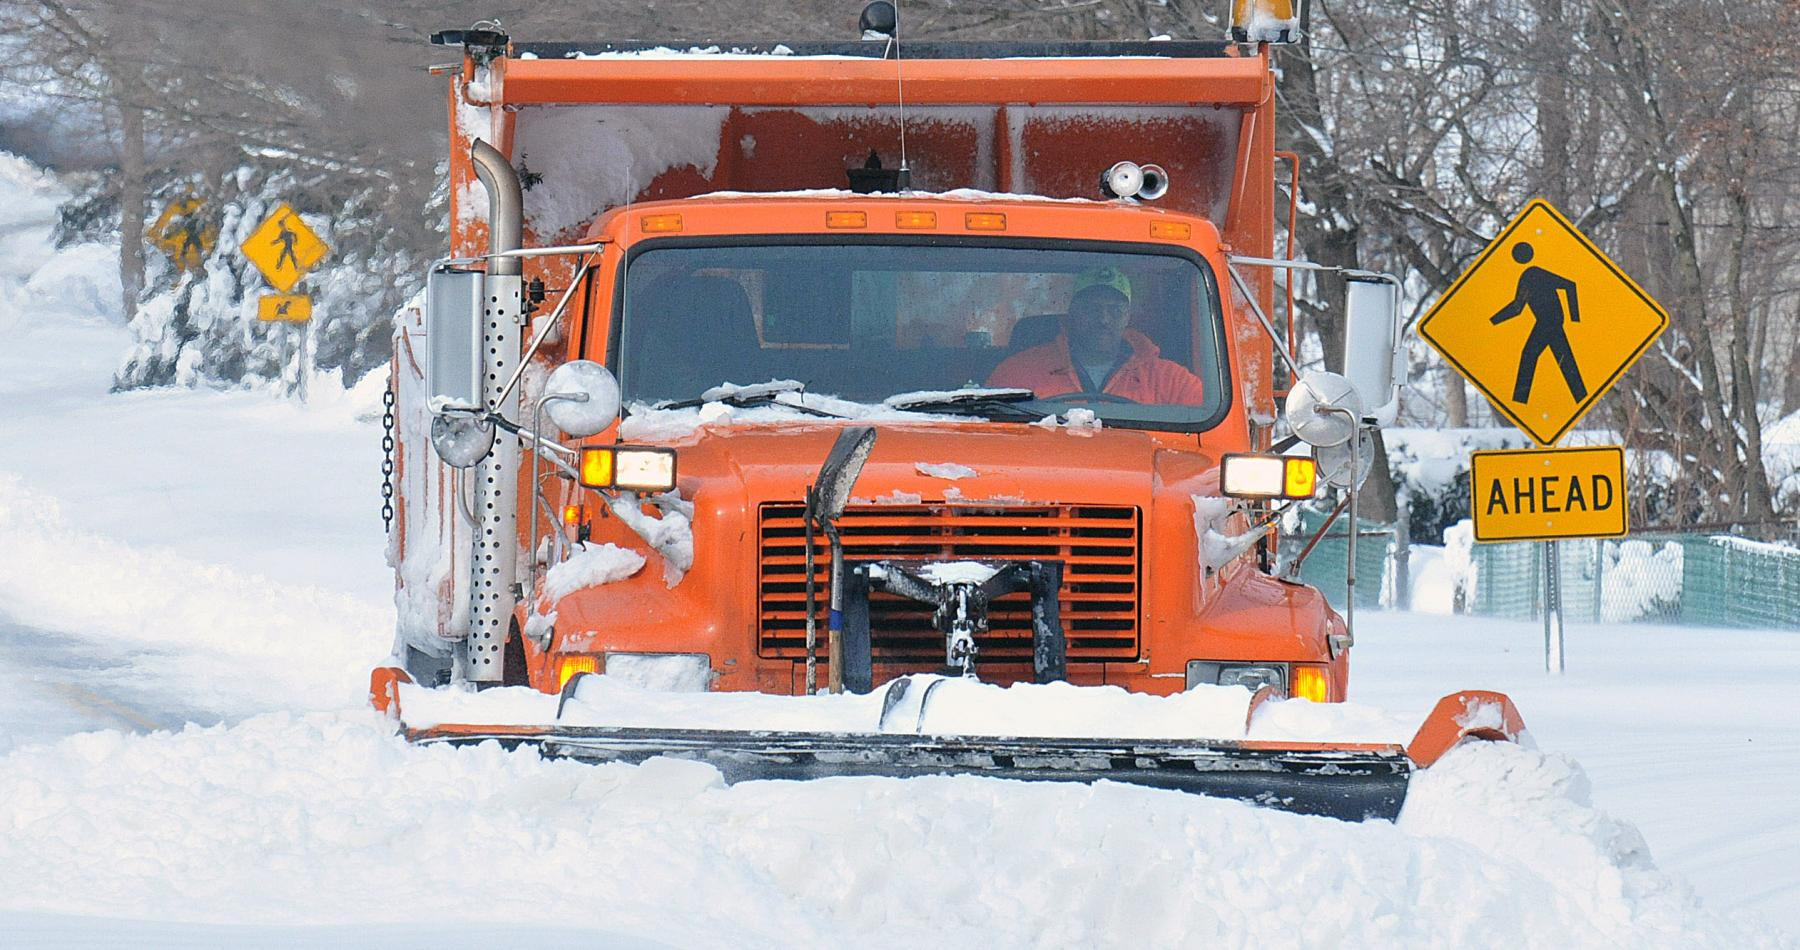 Snow plow and gallons per mile for municapl vehicles